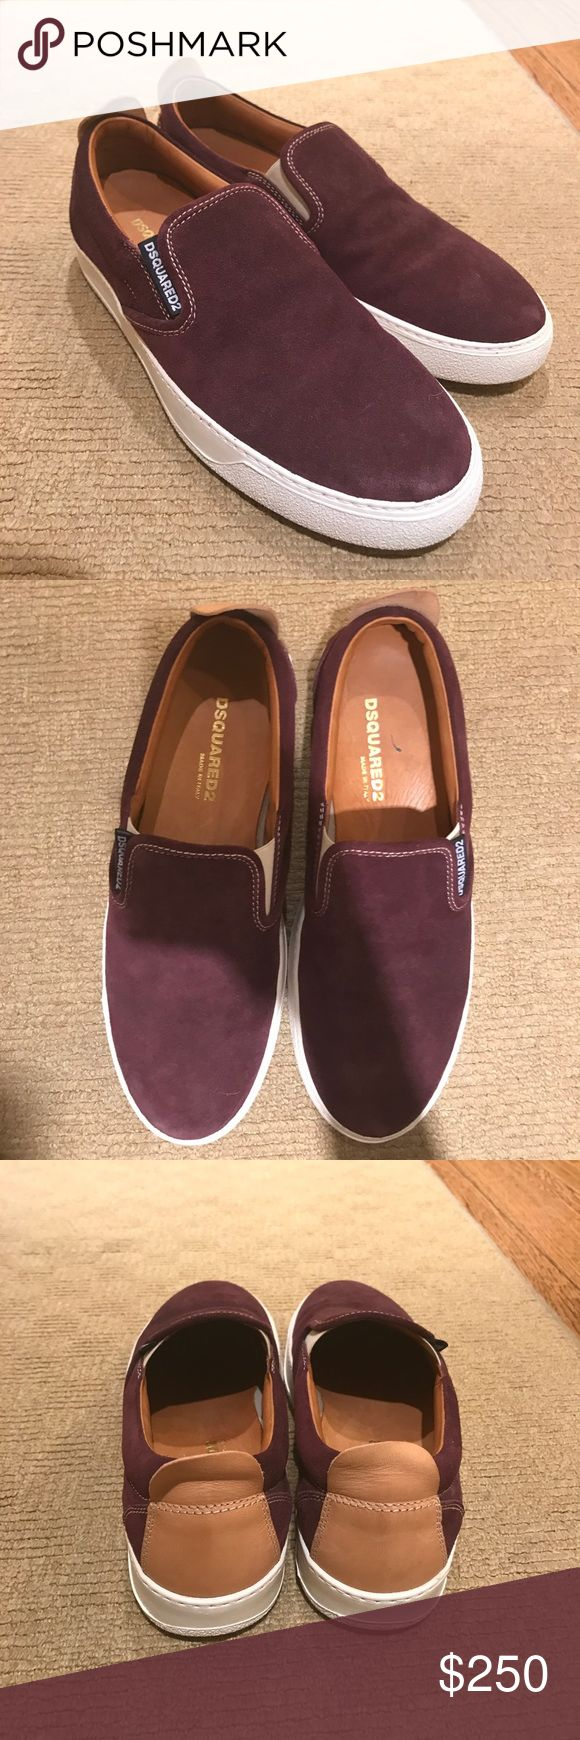 Dsquared NEVER BEFORE WORN slip ons a suede never before worn Dsquared slipons in suede maroon. Very versatile and goes well with everything. Size is 43 DSQUARED Shoes Loafers & Slip-Ons